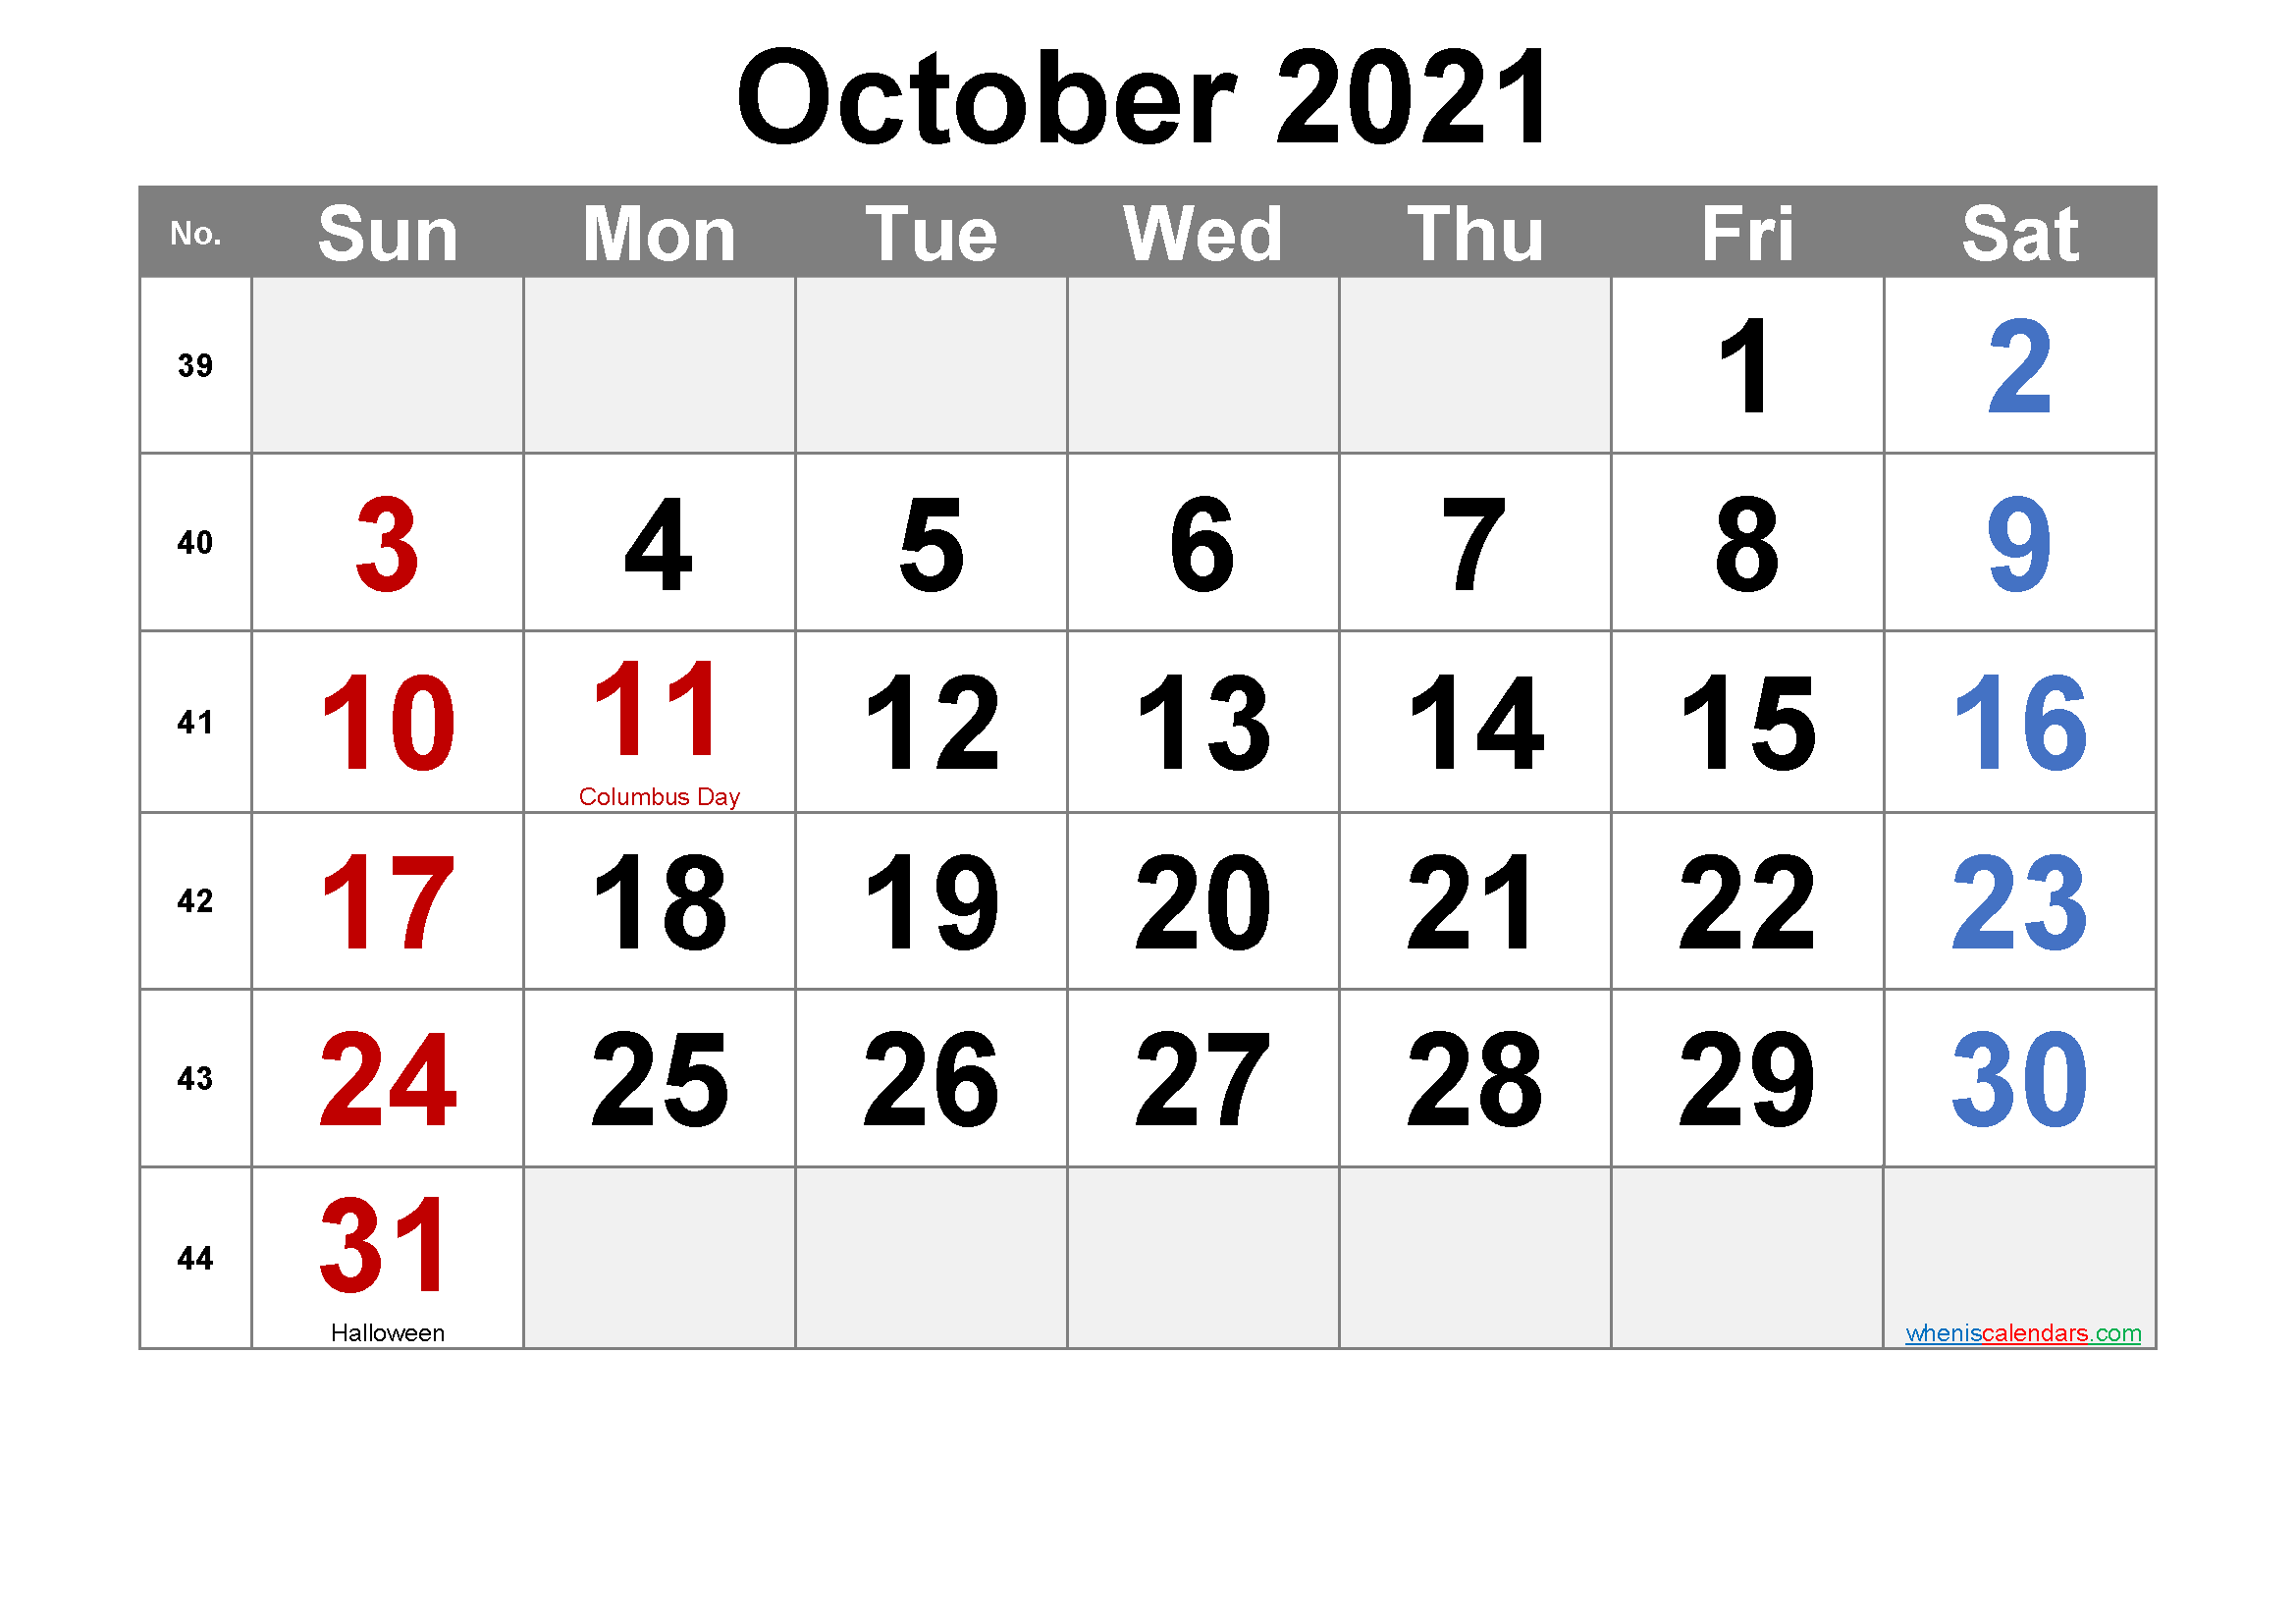 October 2021 Printable Calendar with Holidays